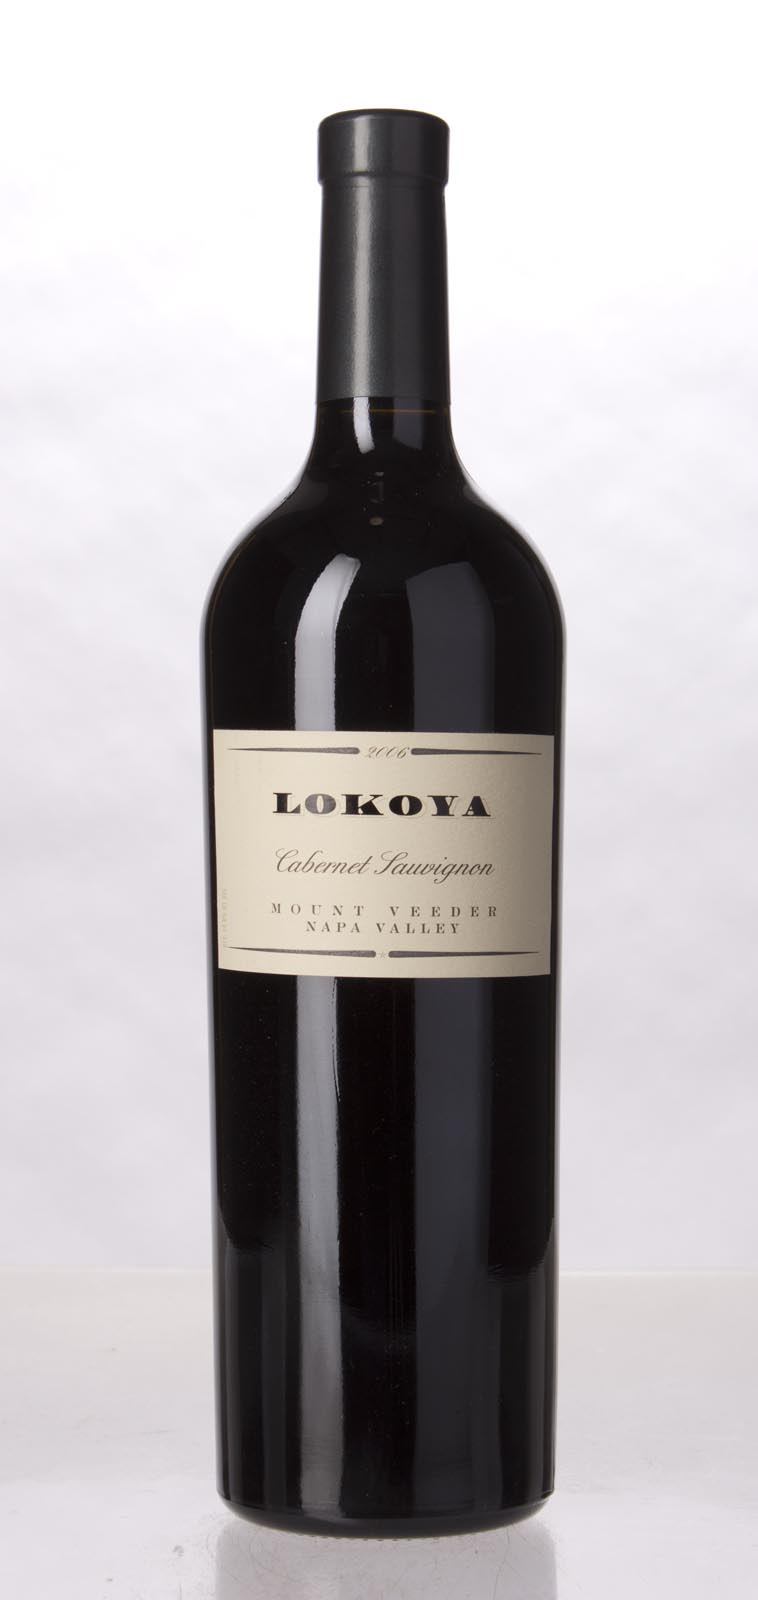 Lokoya Cabernet Sauvignon Mount Veeder 2006, 750mL (WA95+) from The BPW - Merchants of rare and fine wines.